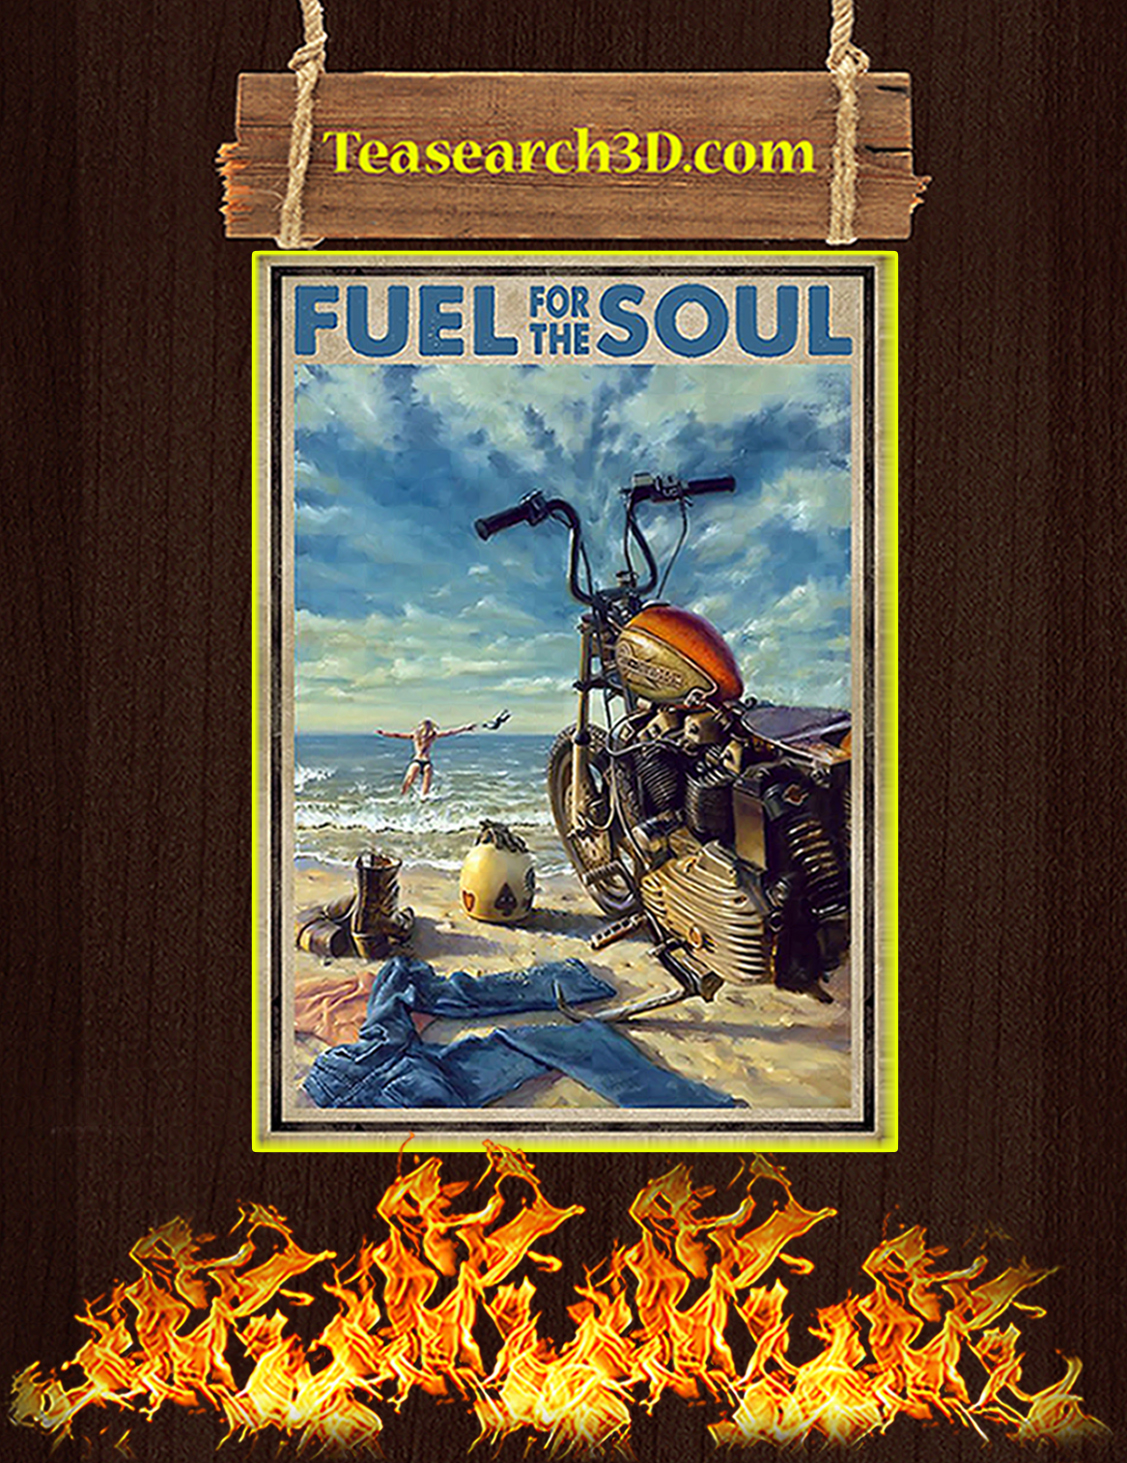 Biker girl fuel for the soul poster A2